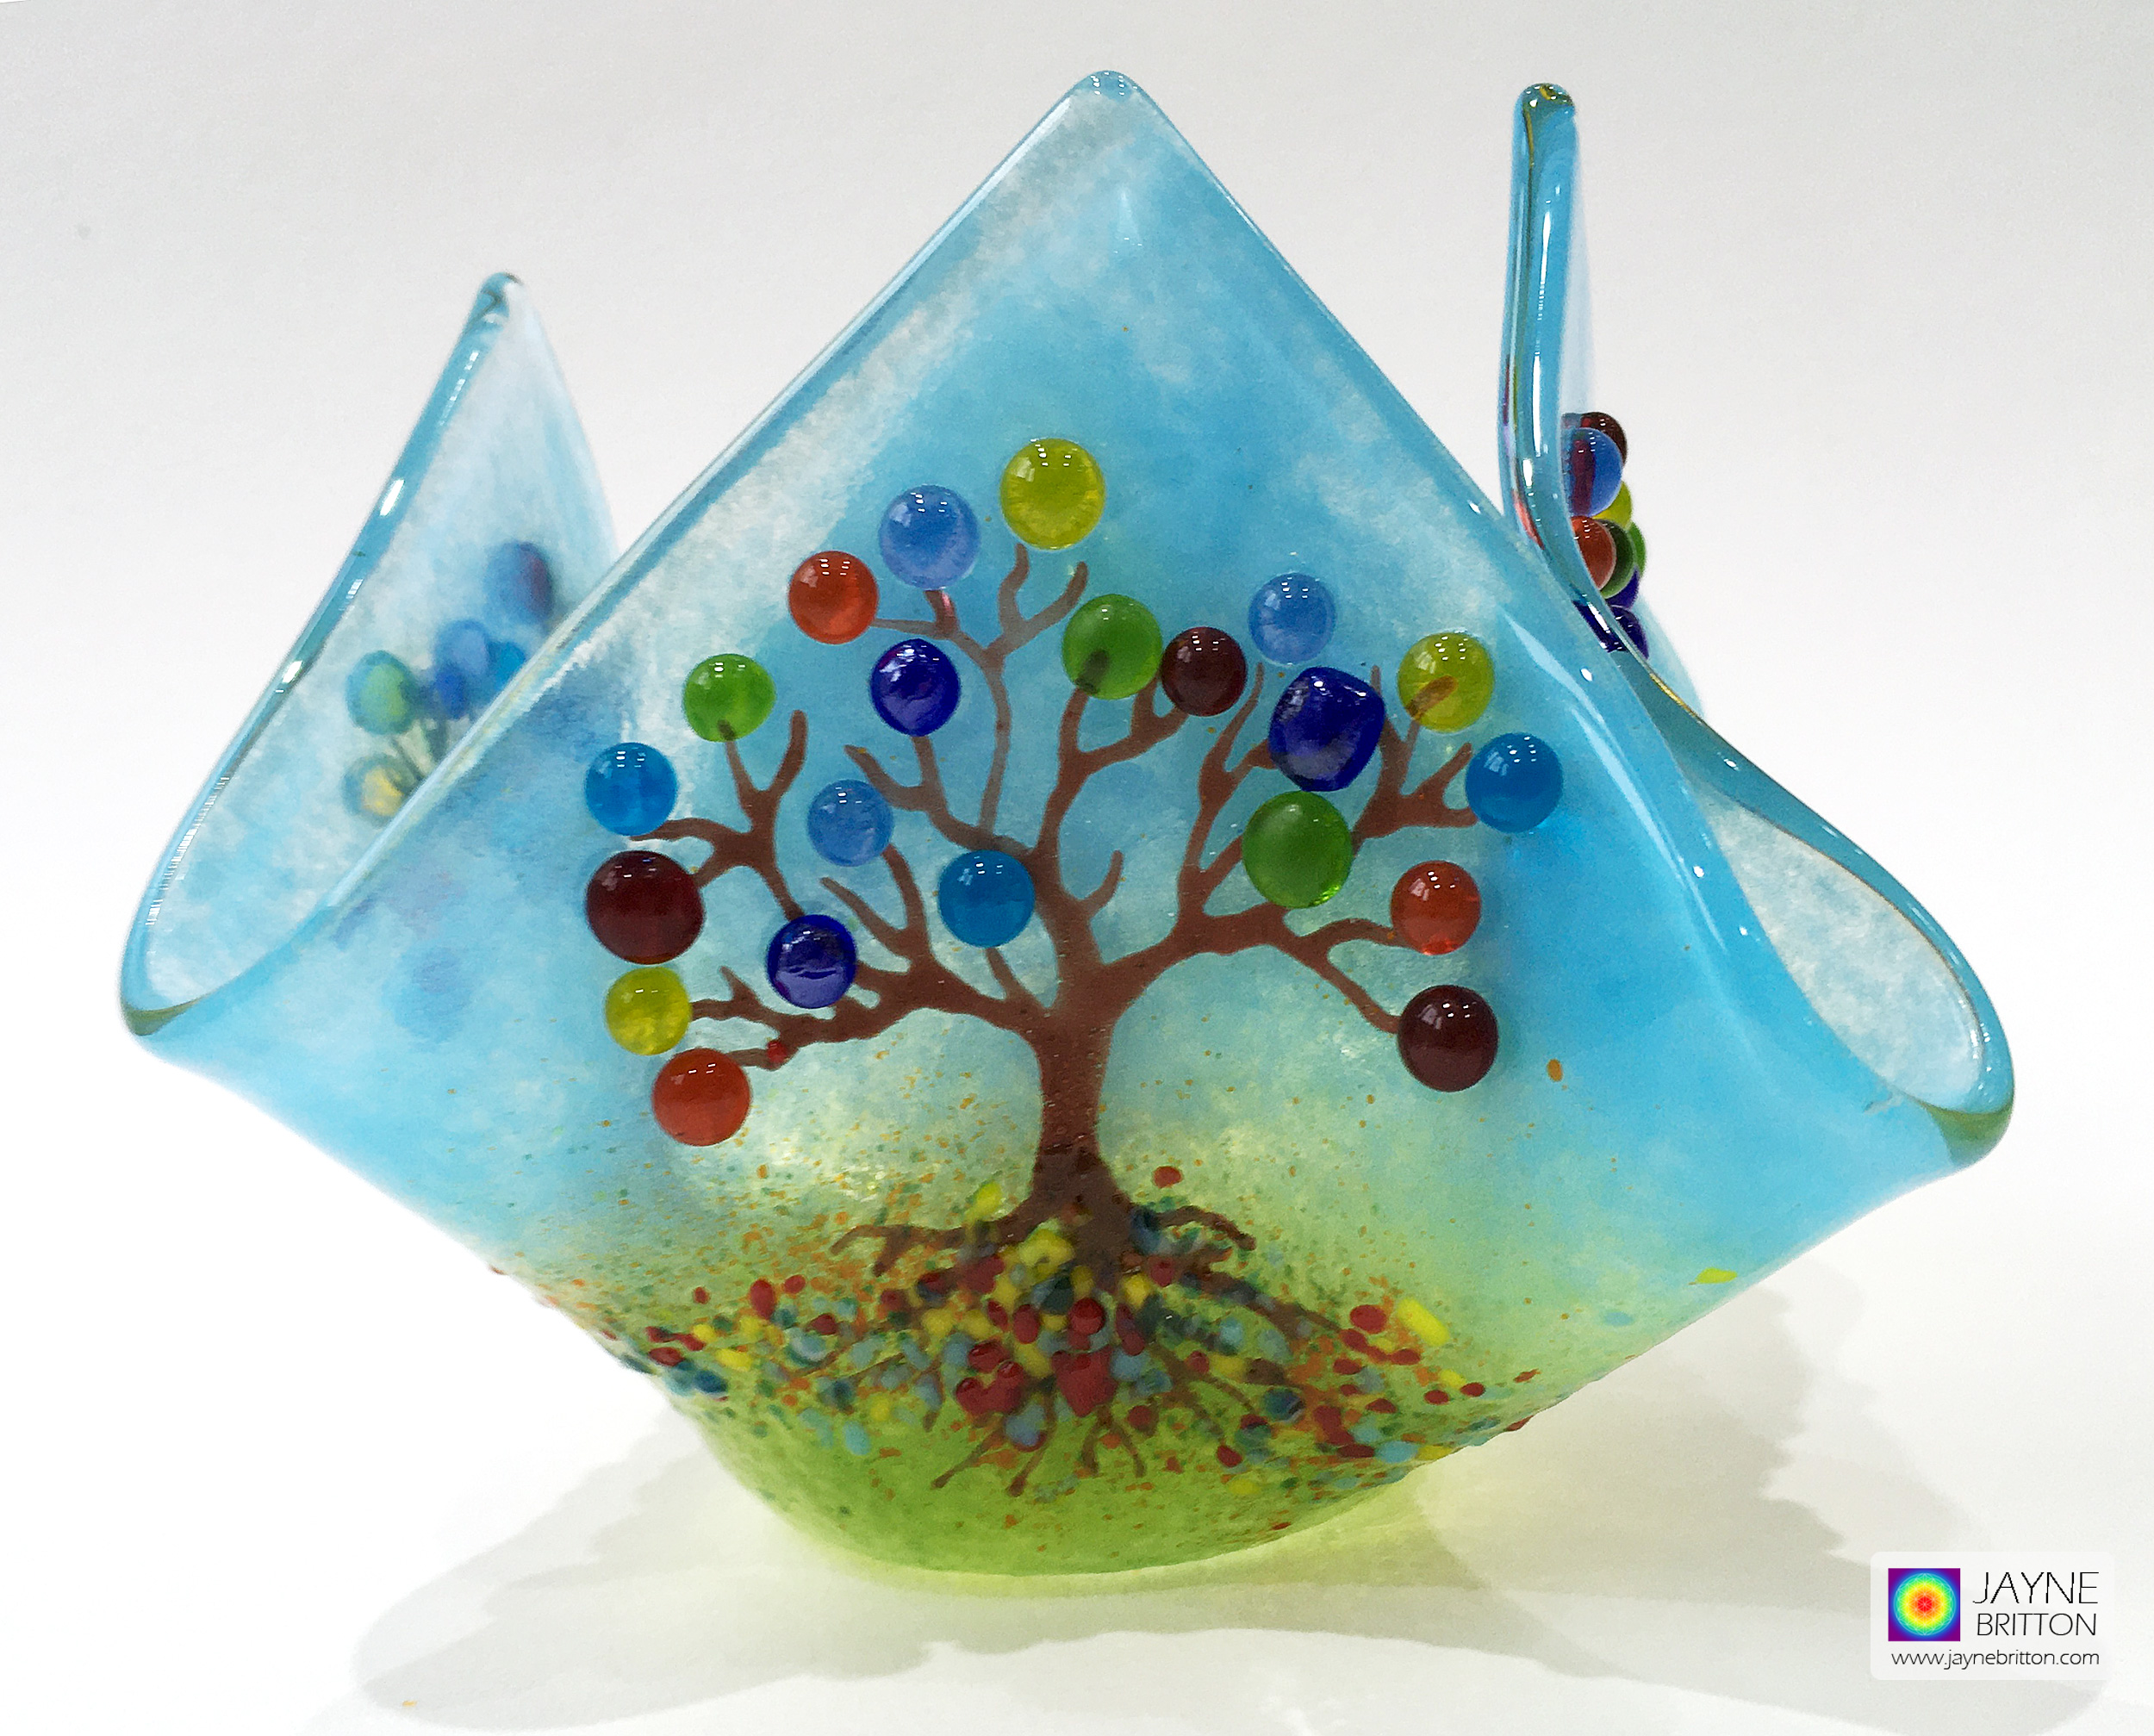 Candle vase - Tree of Life - seven chakra blossom trees